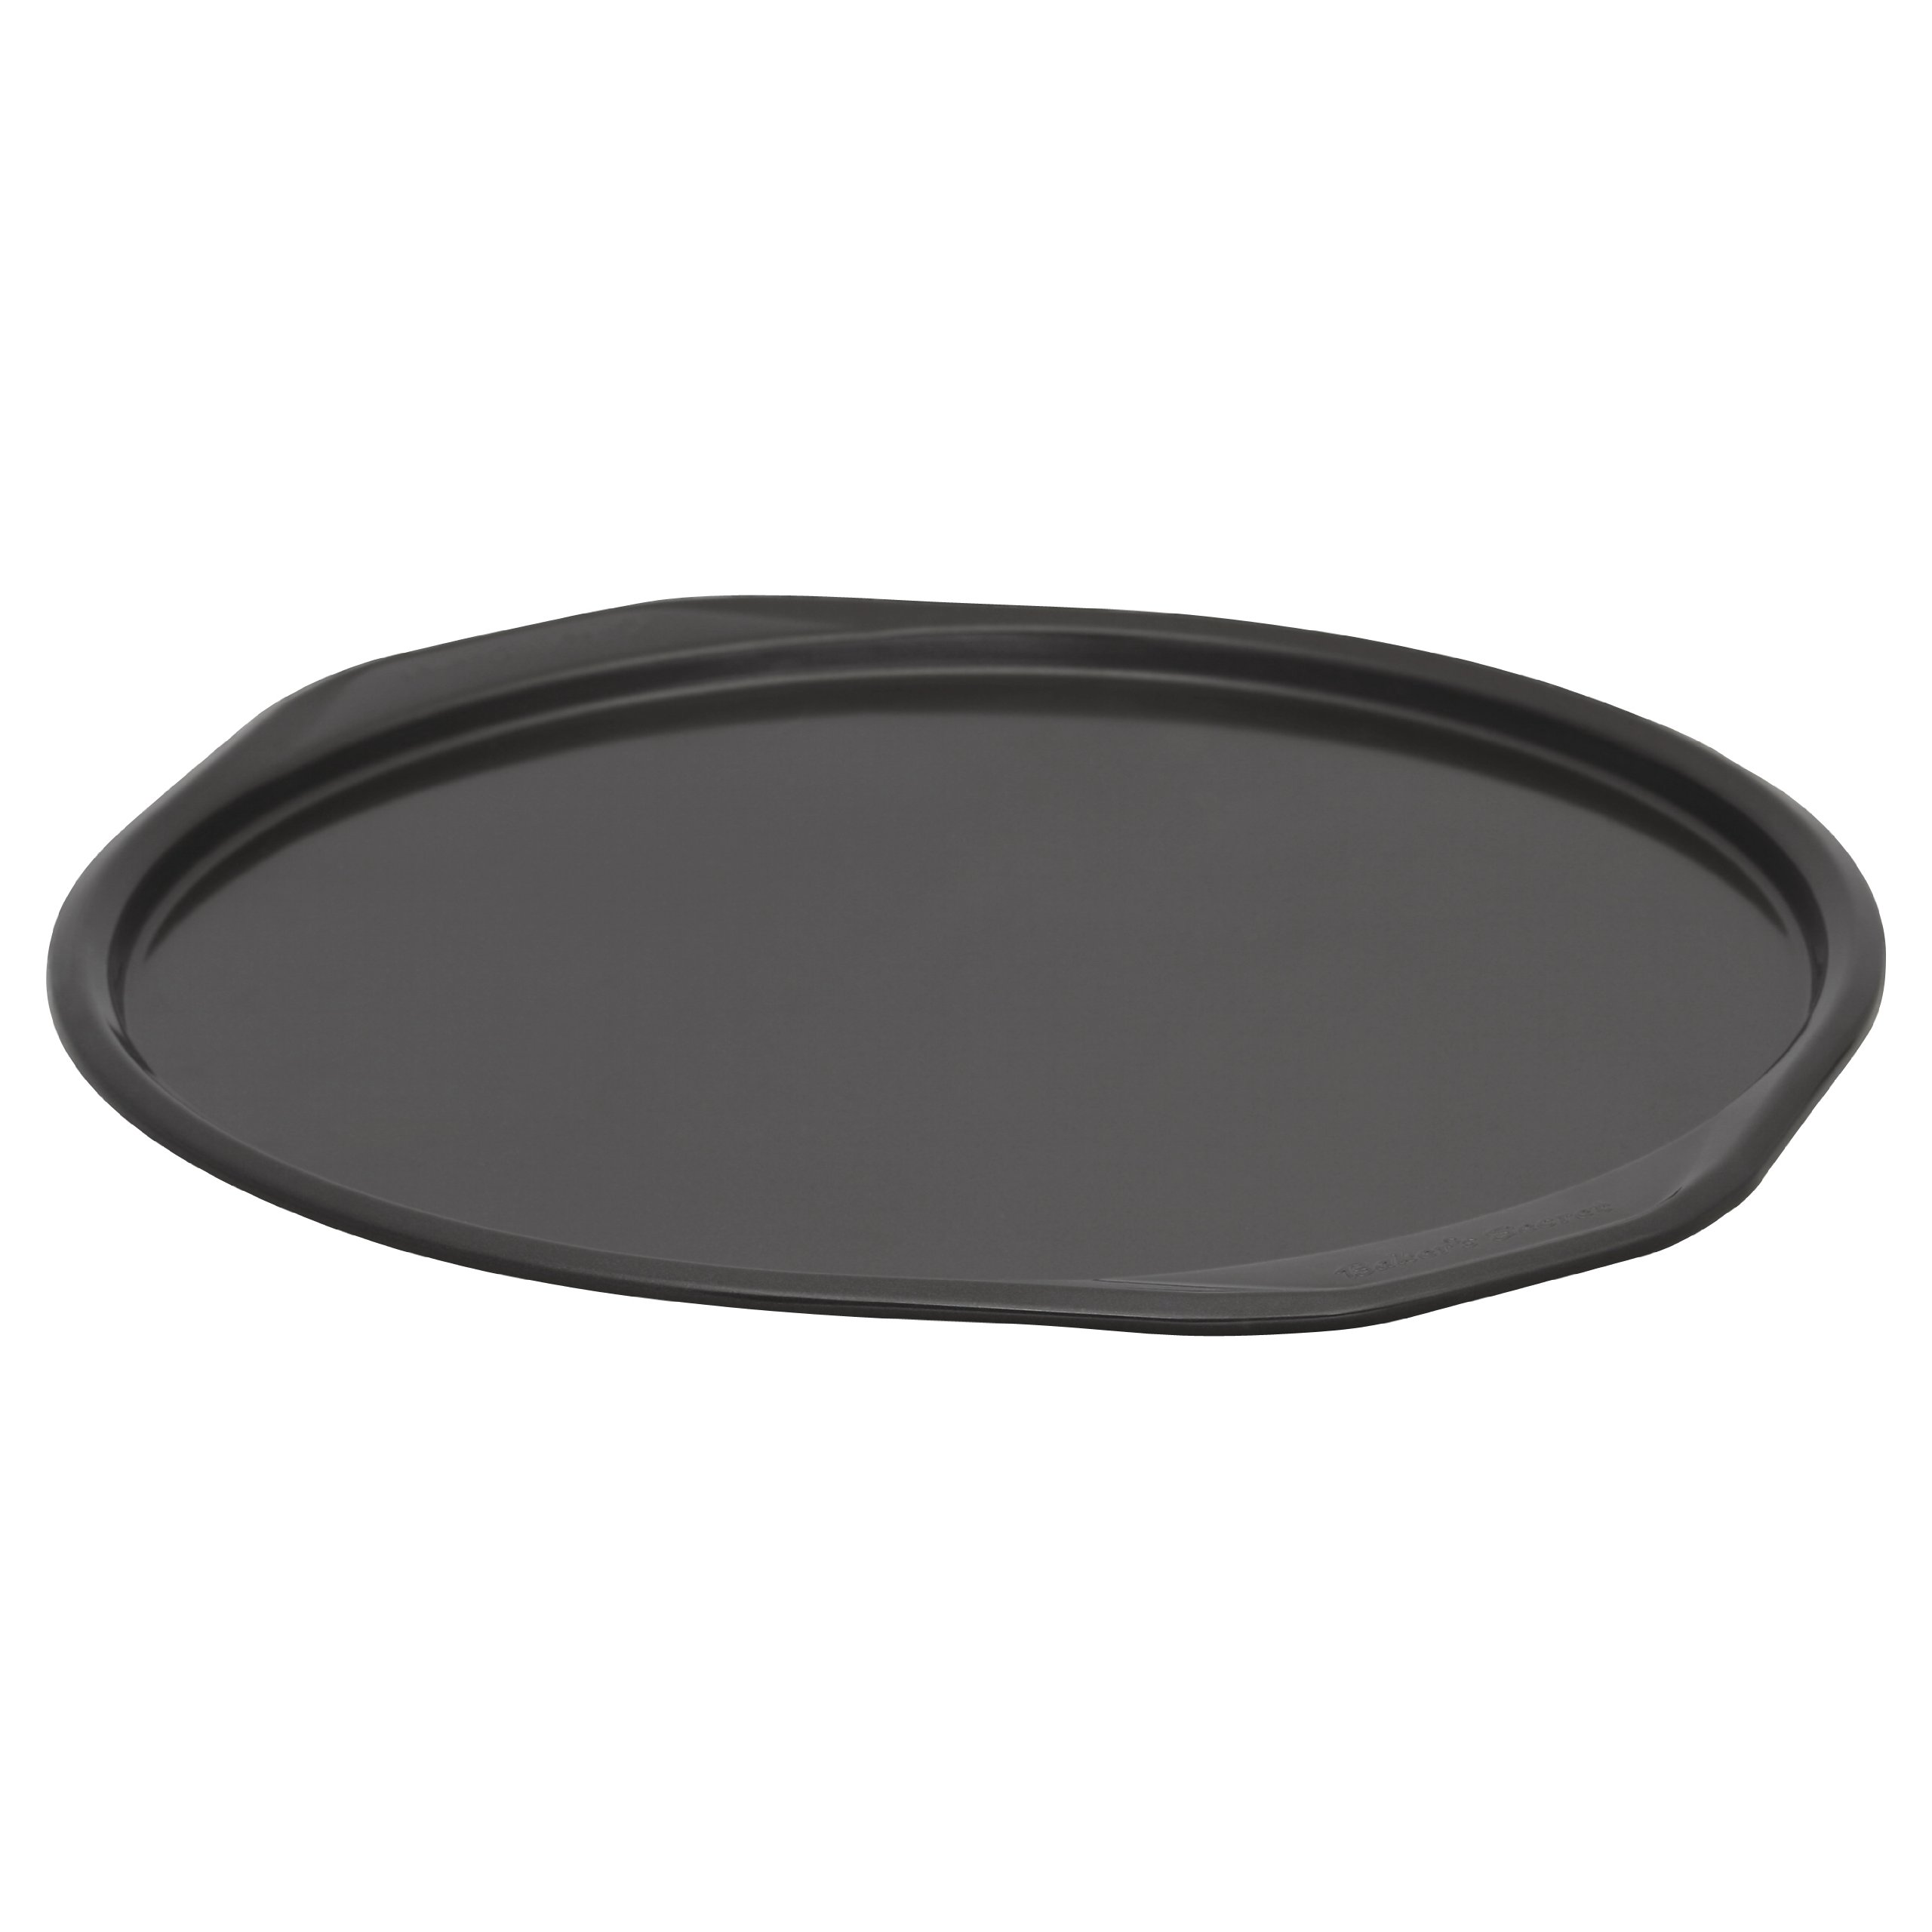 Baker's Secret 1107164 Signature Pizza Pan, 14-Inch